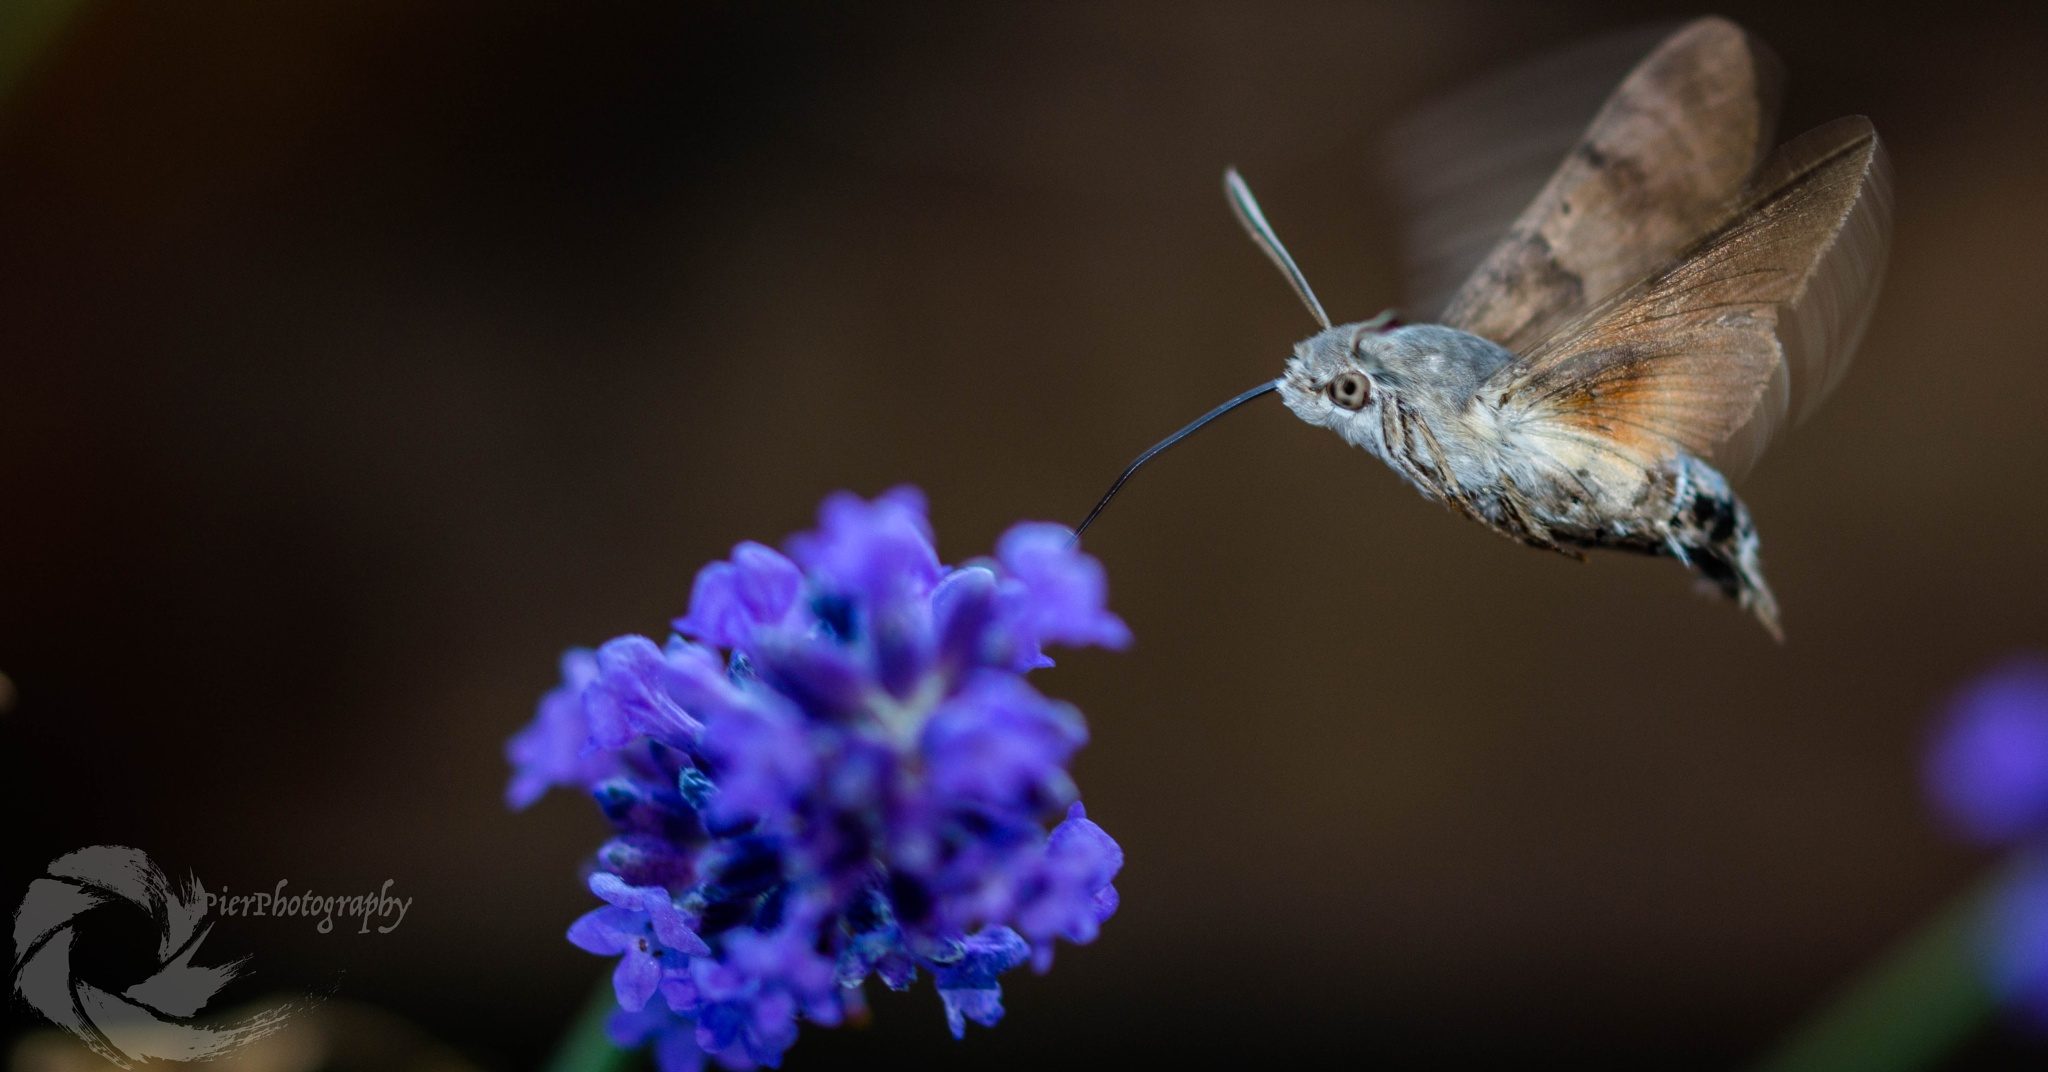 Moro sphinx by pier-photography